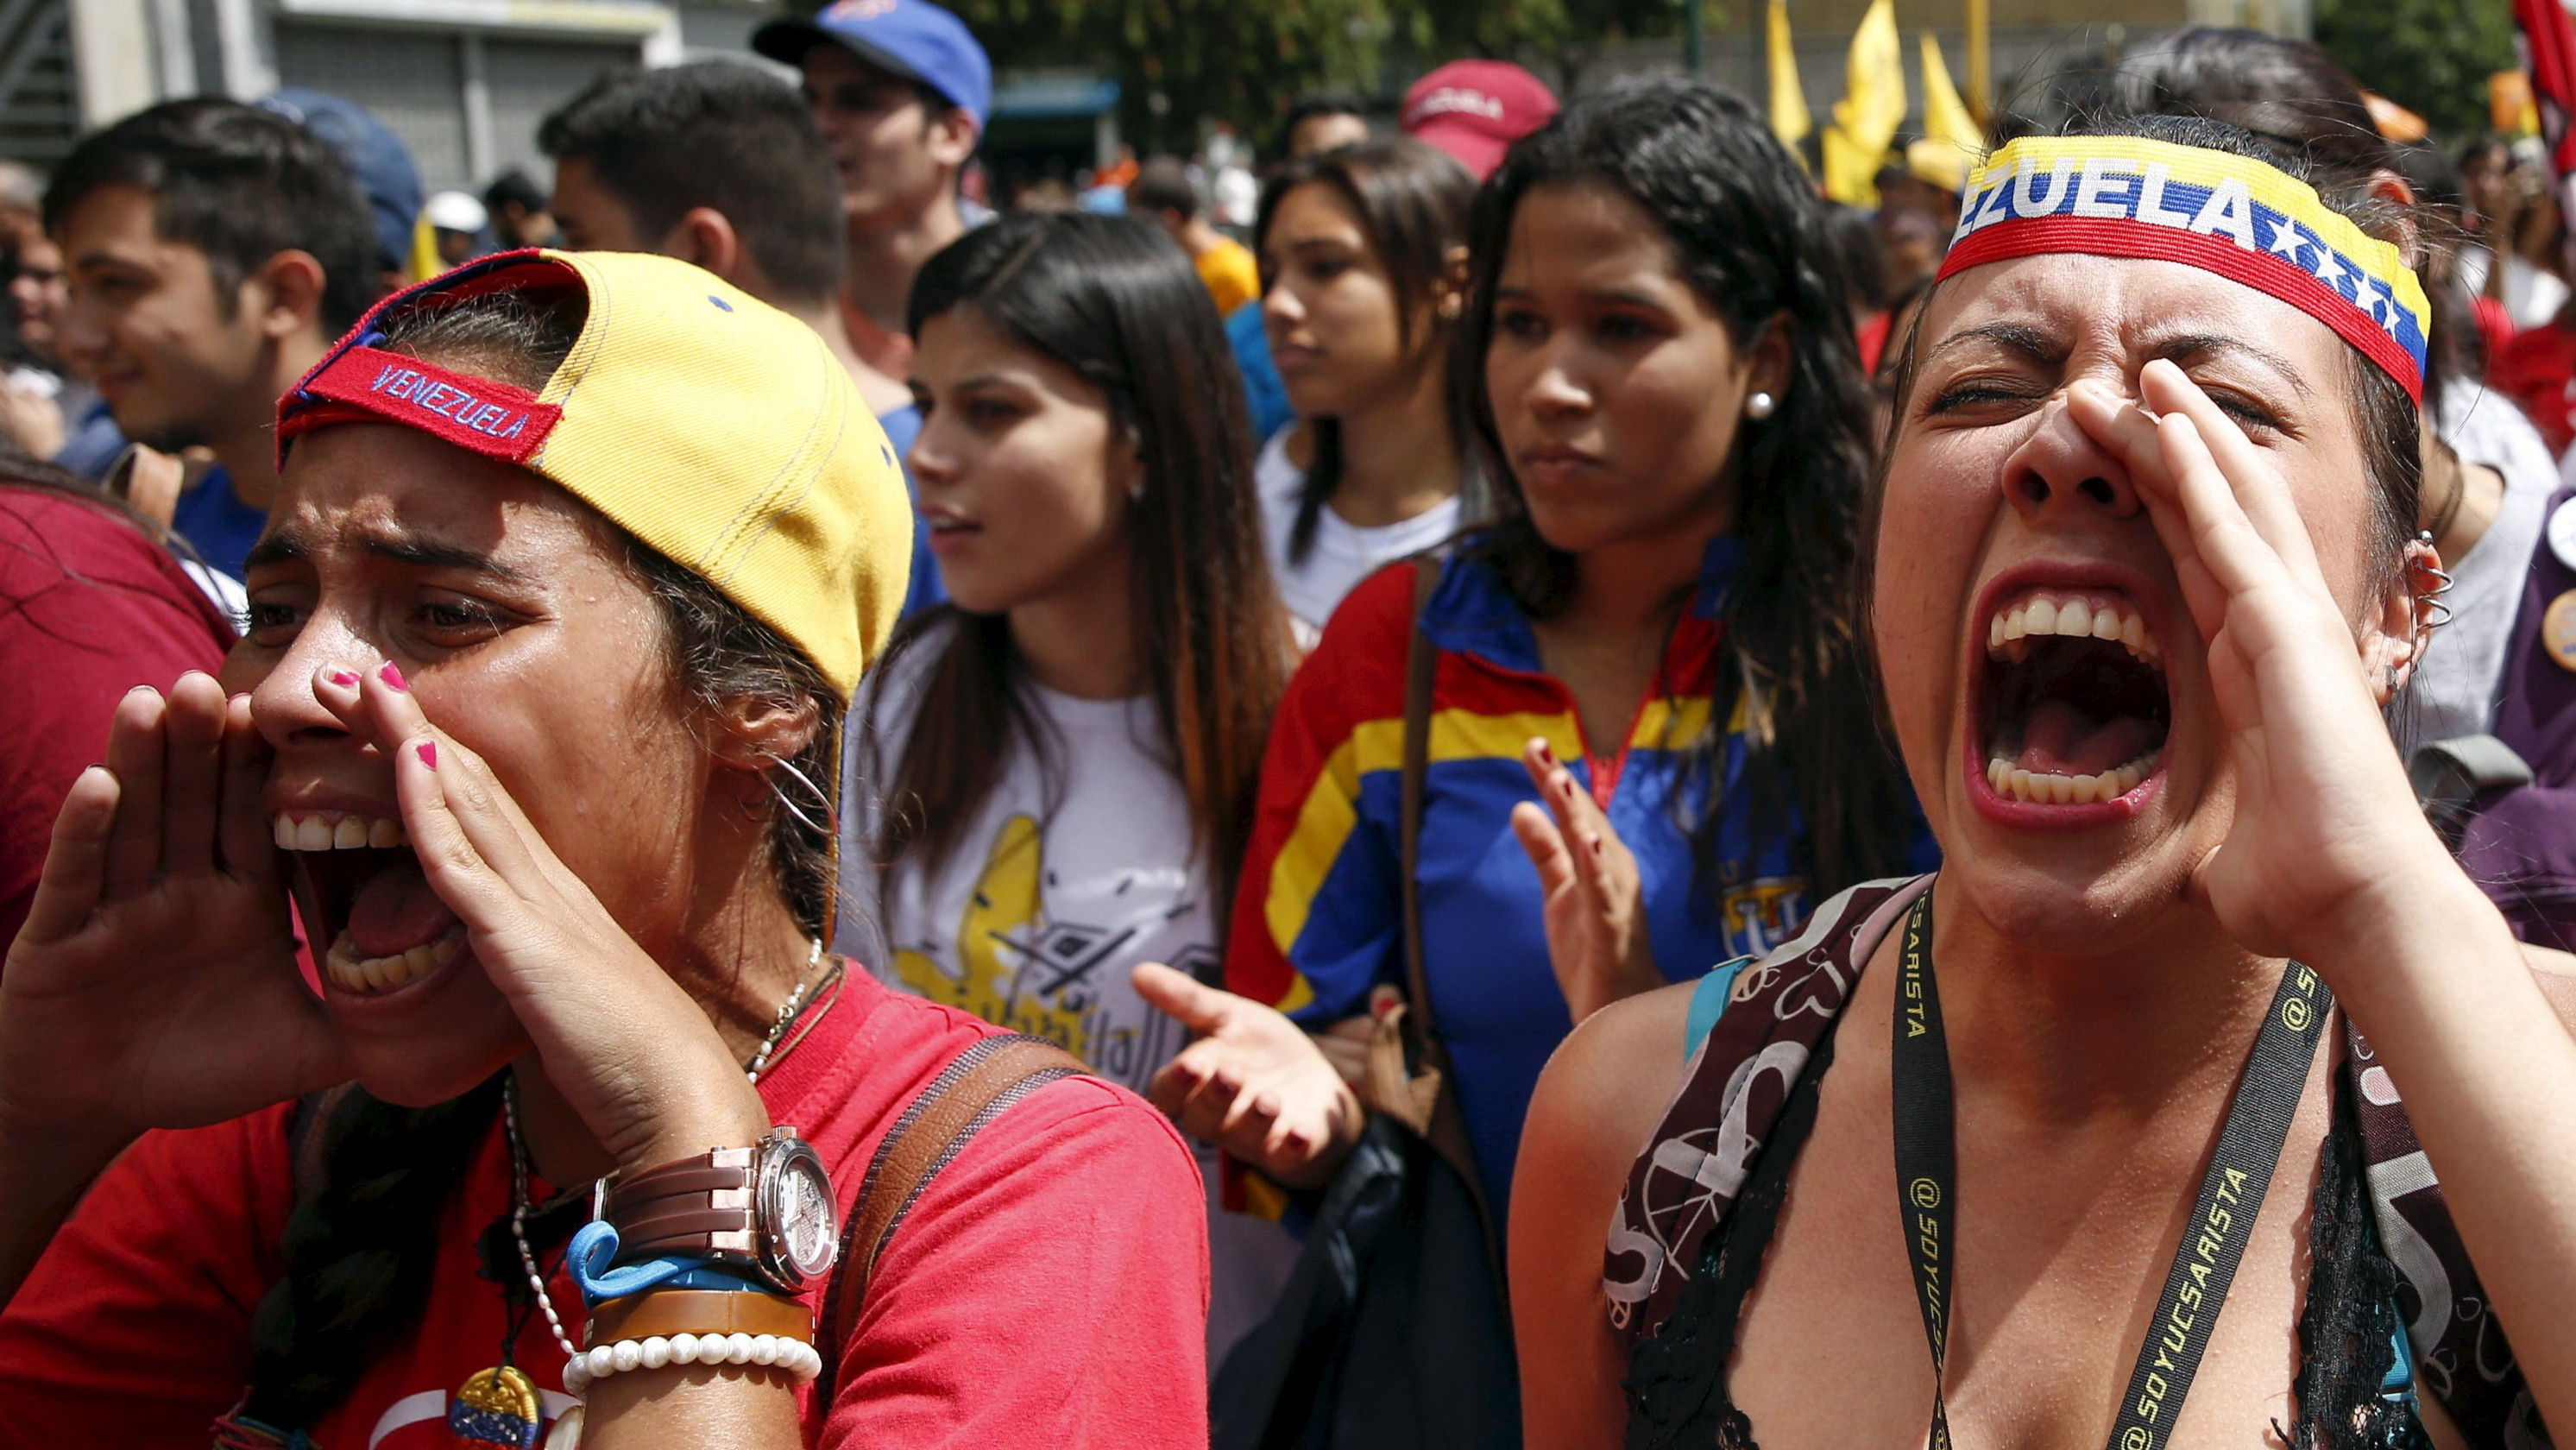 Opposition students shout slogans while they take part in a rally against President Nicolas Maduro's government on University Student Day, in Caracas